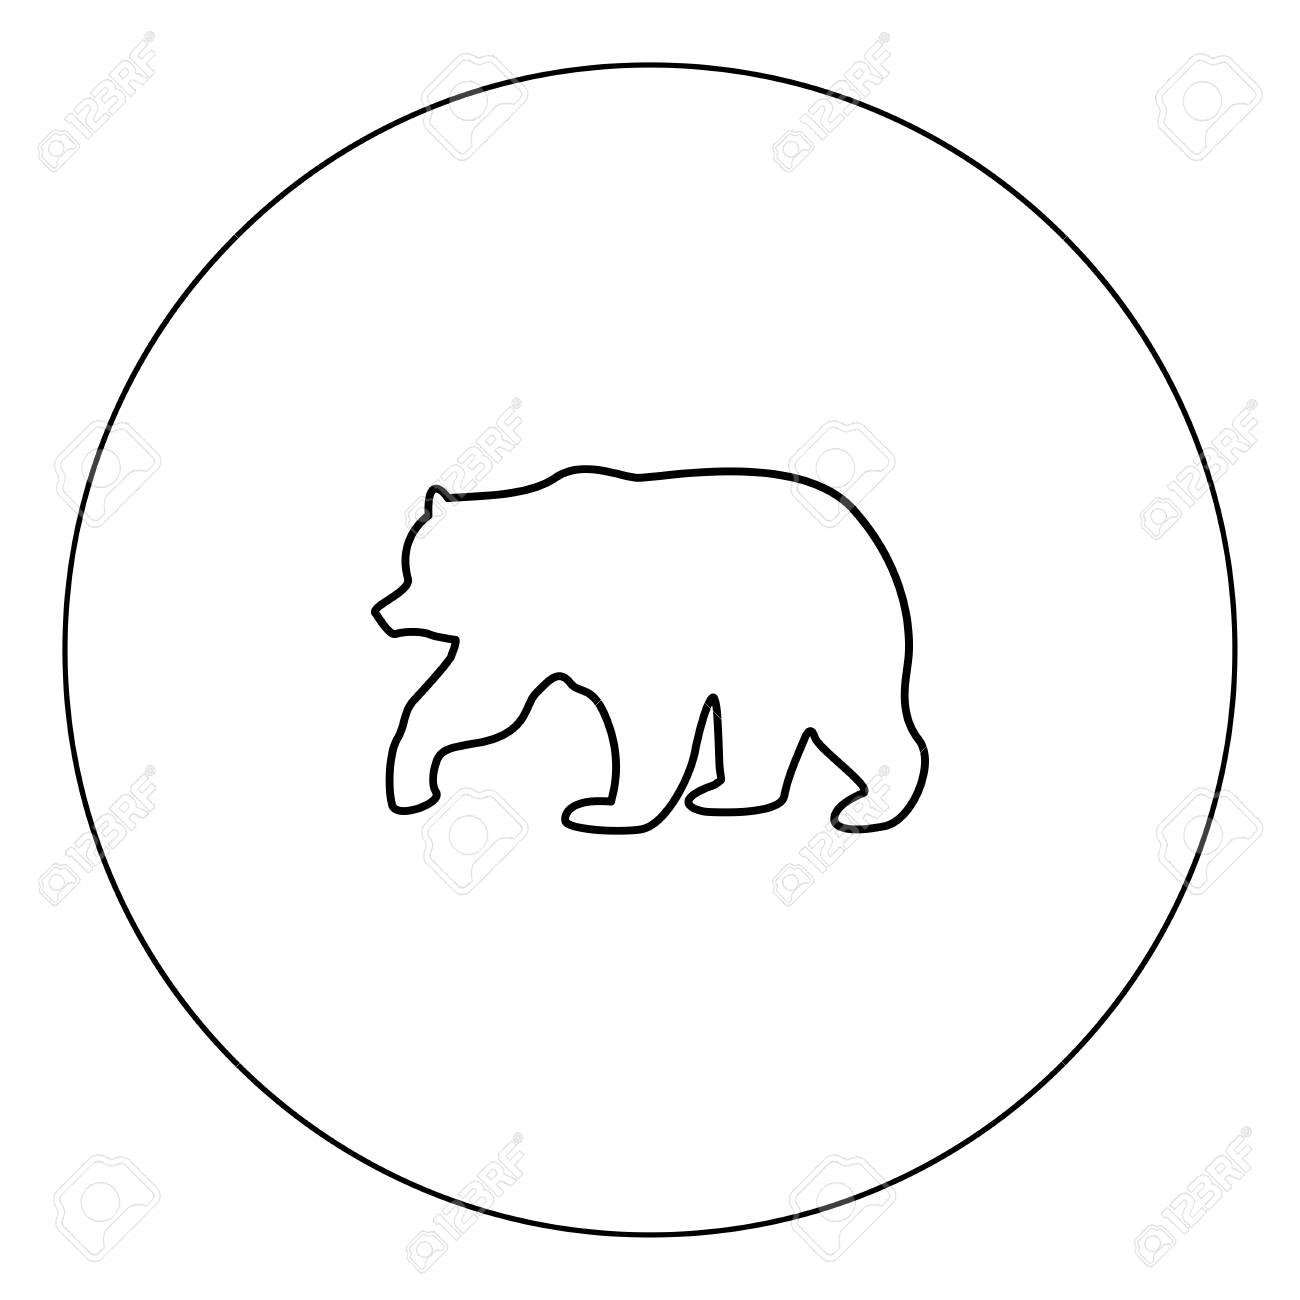 bear icon black color in circle vector illustration isolated royalty free cliparts vectors and stock illustration image 102324674 bear icon black color in circle vector illustration isolated